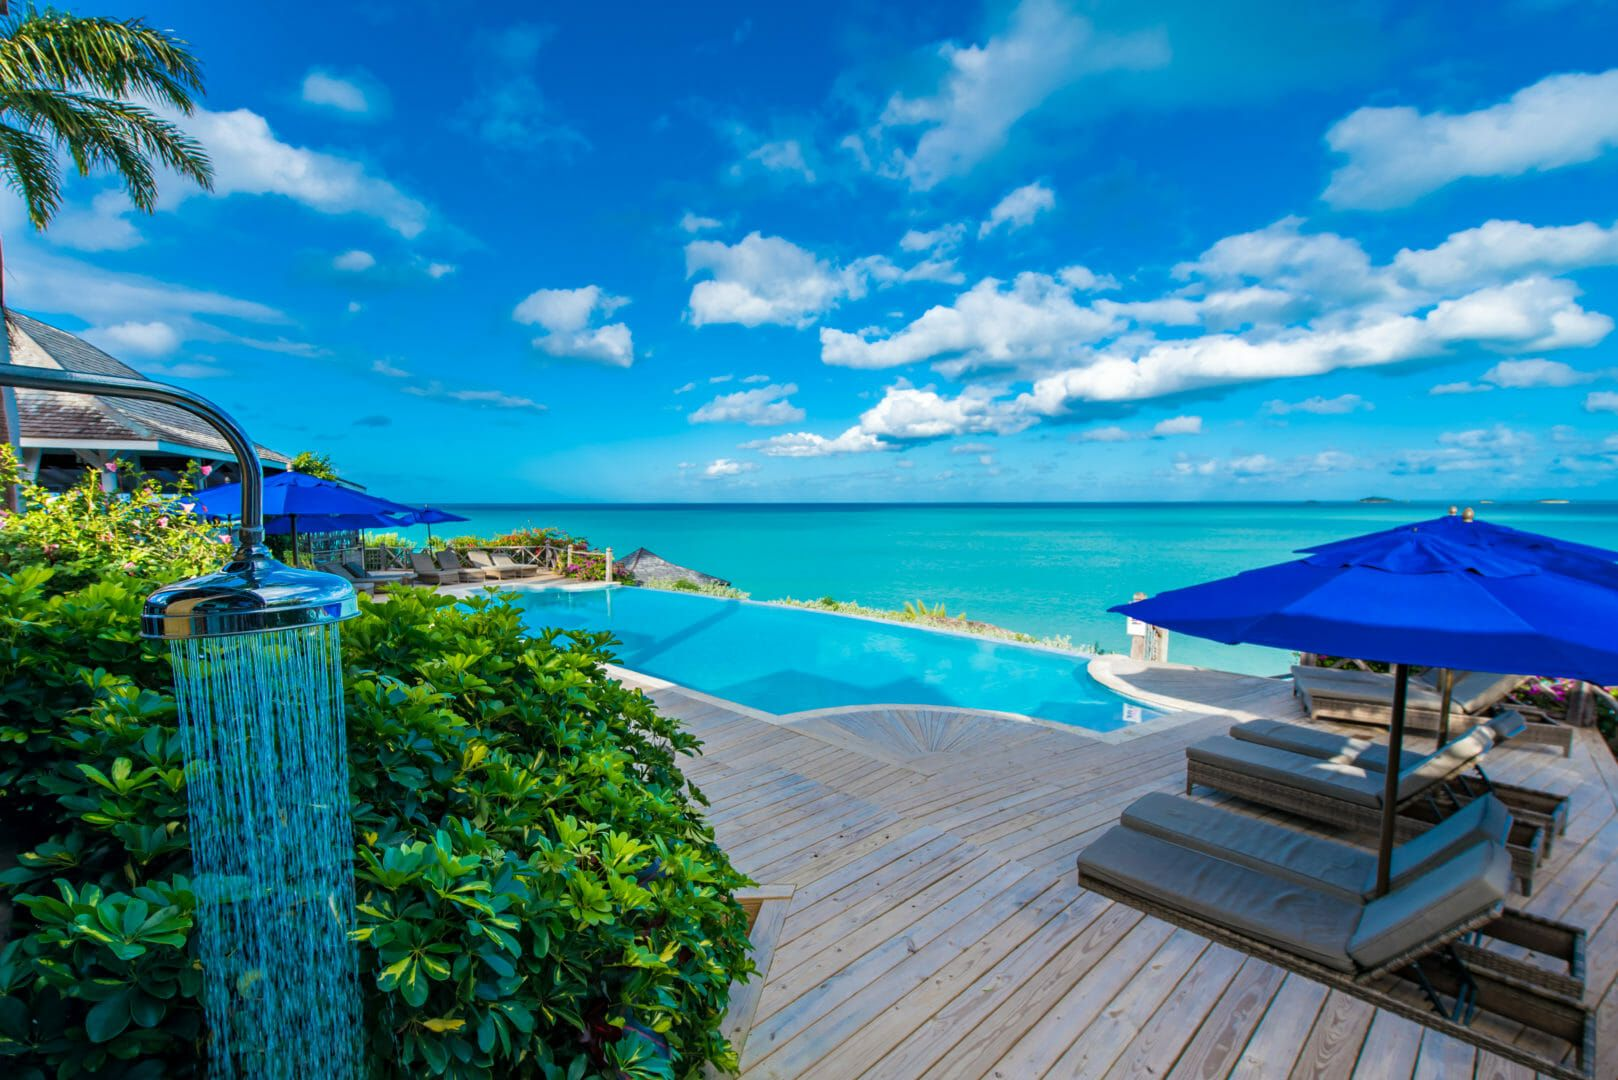 Adult only Resorts For Honeymoons and Couples Getaways in